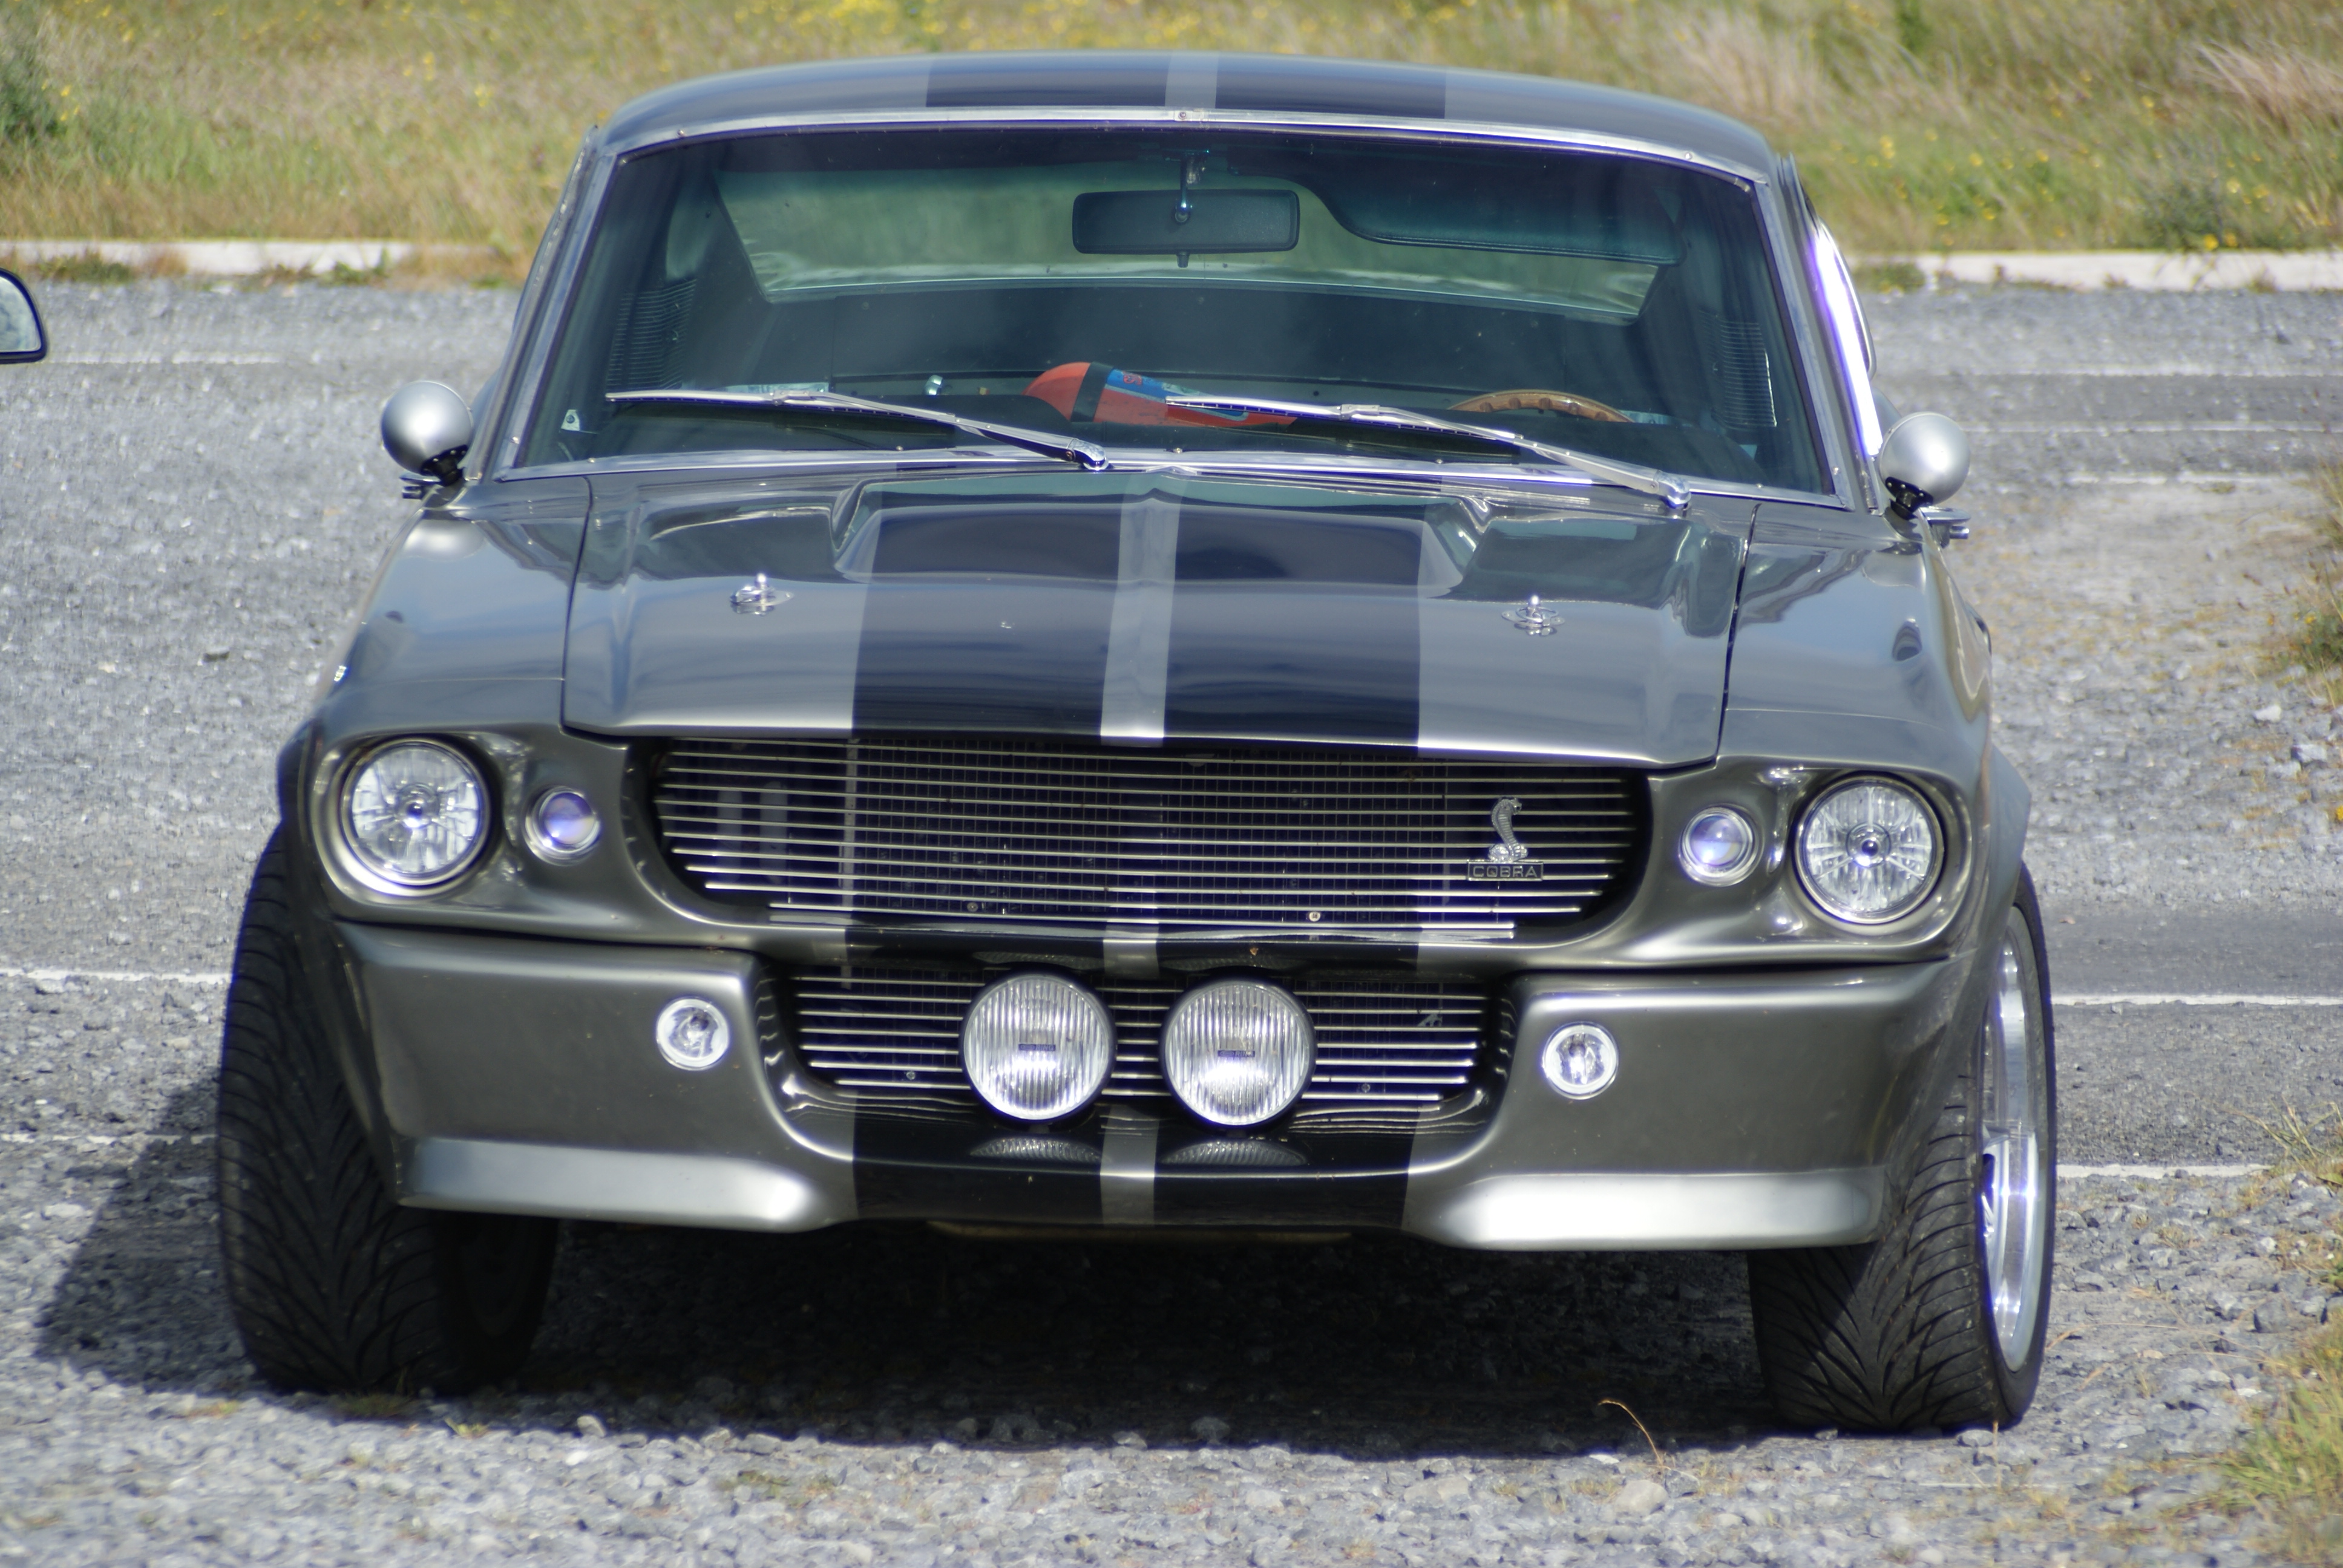 1967 Shelby Mustang GT 500 American Muscle car